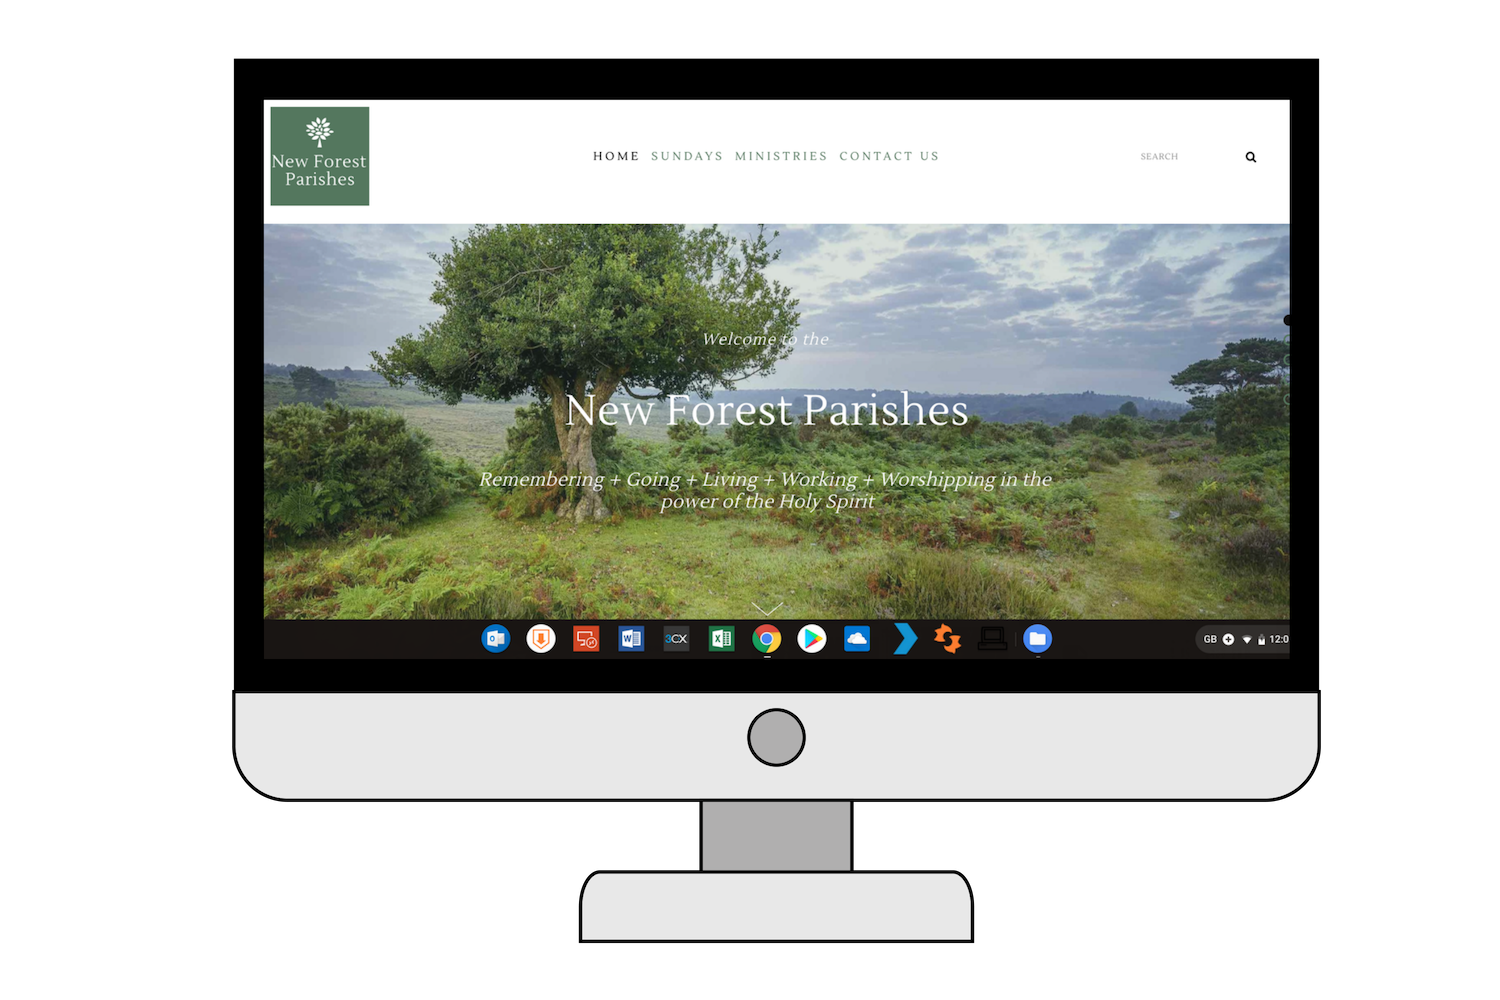 New Forest Parishes - home page